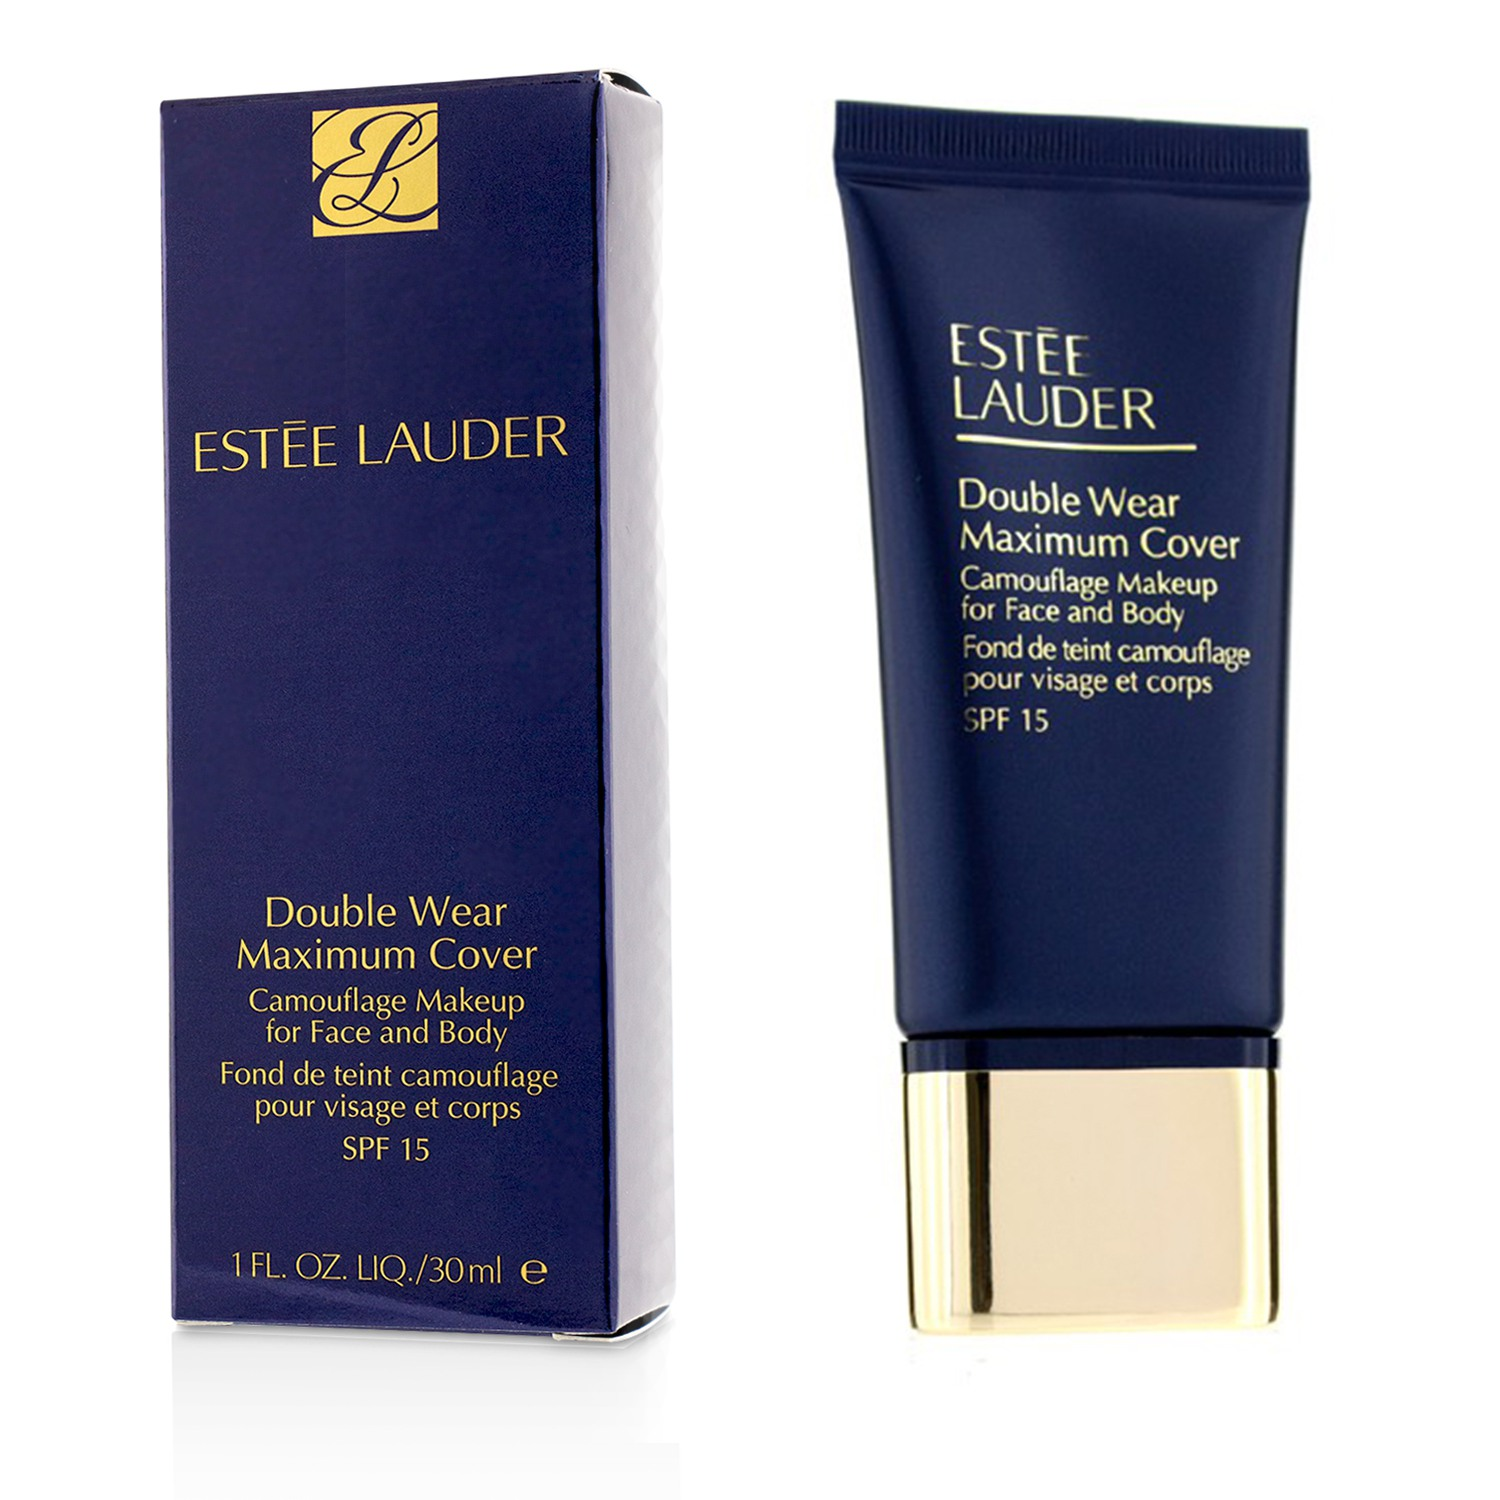 Double Wear - Maximum Cover Camouflage Makeup for Face and Body SPF 15 - 2C5 Creamy Tan